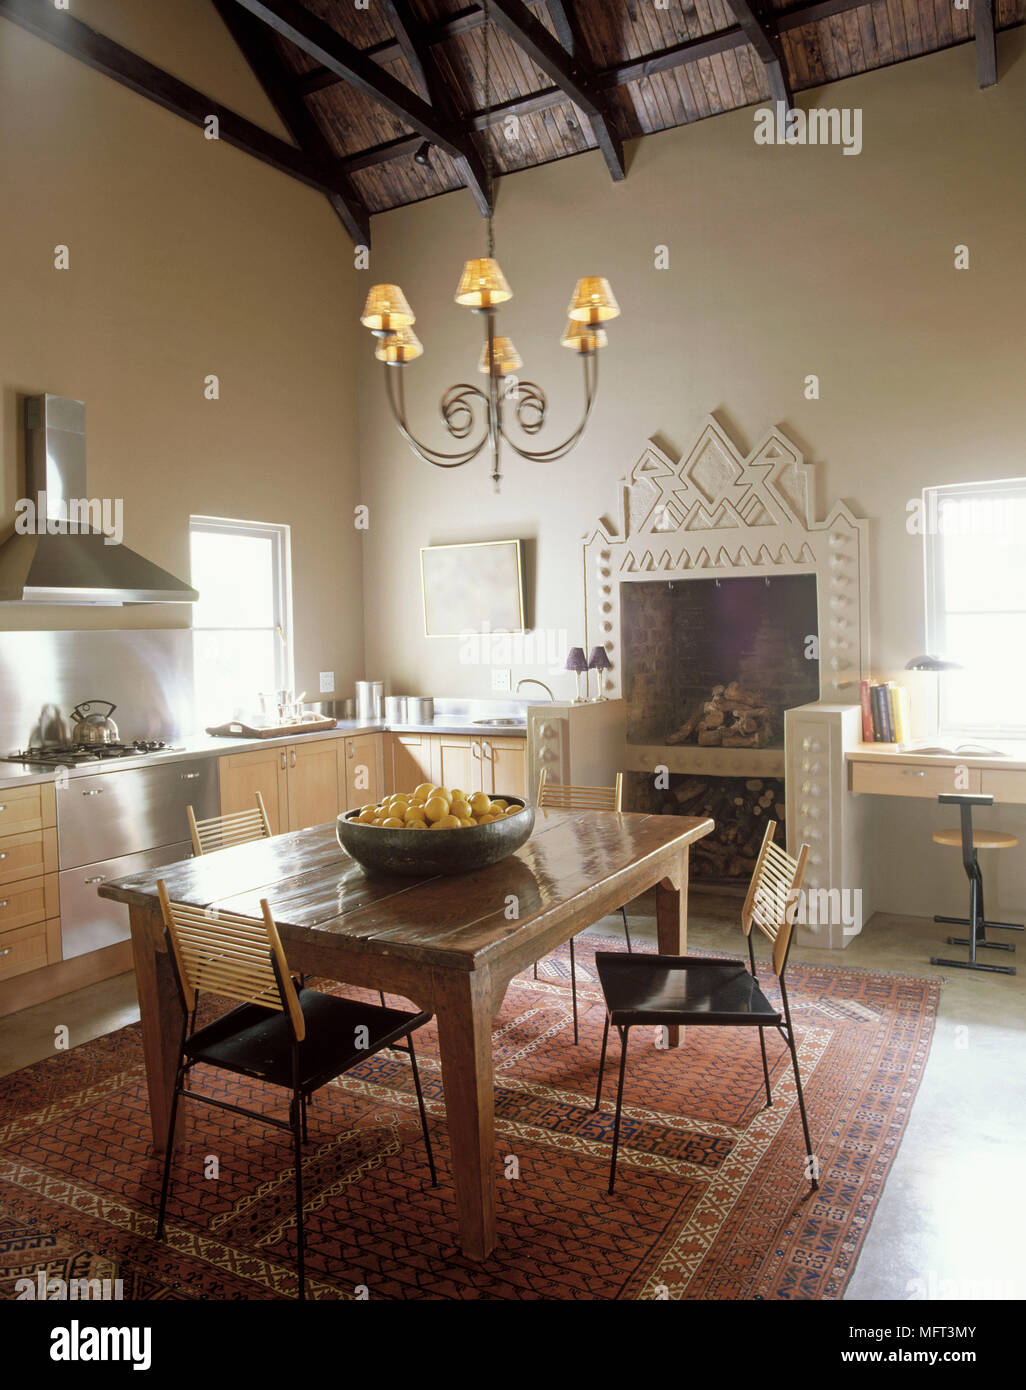 Country Kitchen Wood Units Dining Table Chairs Rug Fireplace Beamed Ceiling Chandelier Interiors Kitchens Rustic Kitchen Diner Diners Fireplaces Stock Photo Alamy